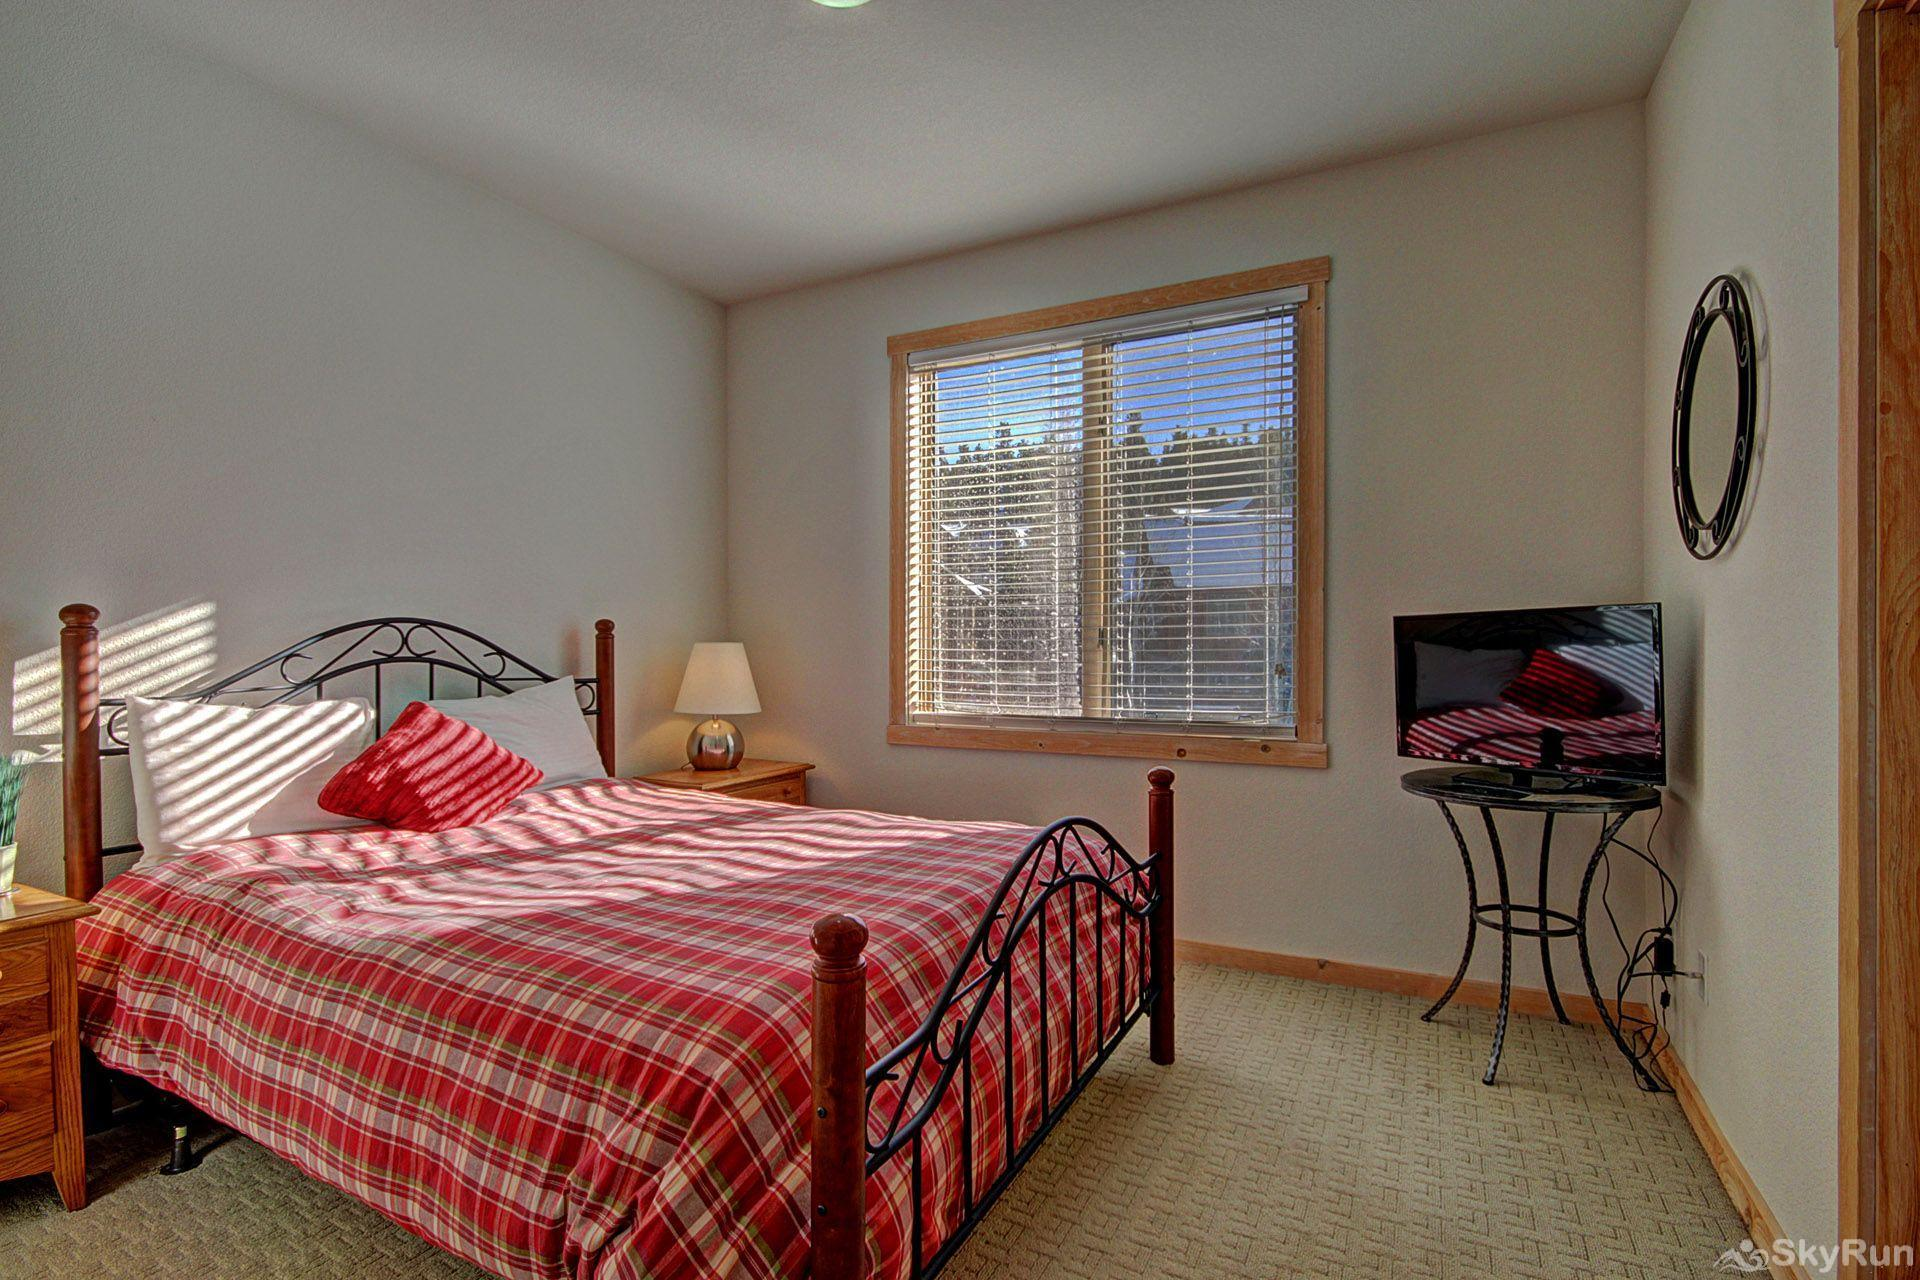 EN402 Ranch at Eagles Nest 3BR 4BA Guest Bedroom with HD TV